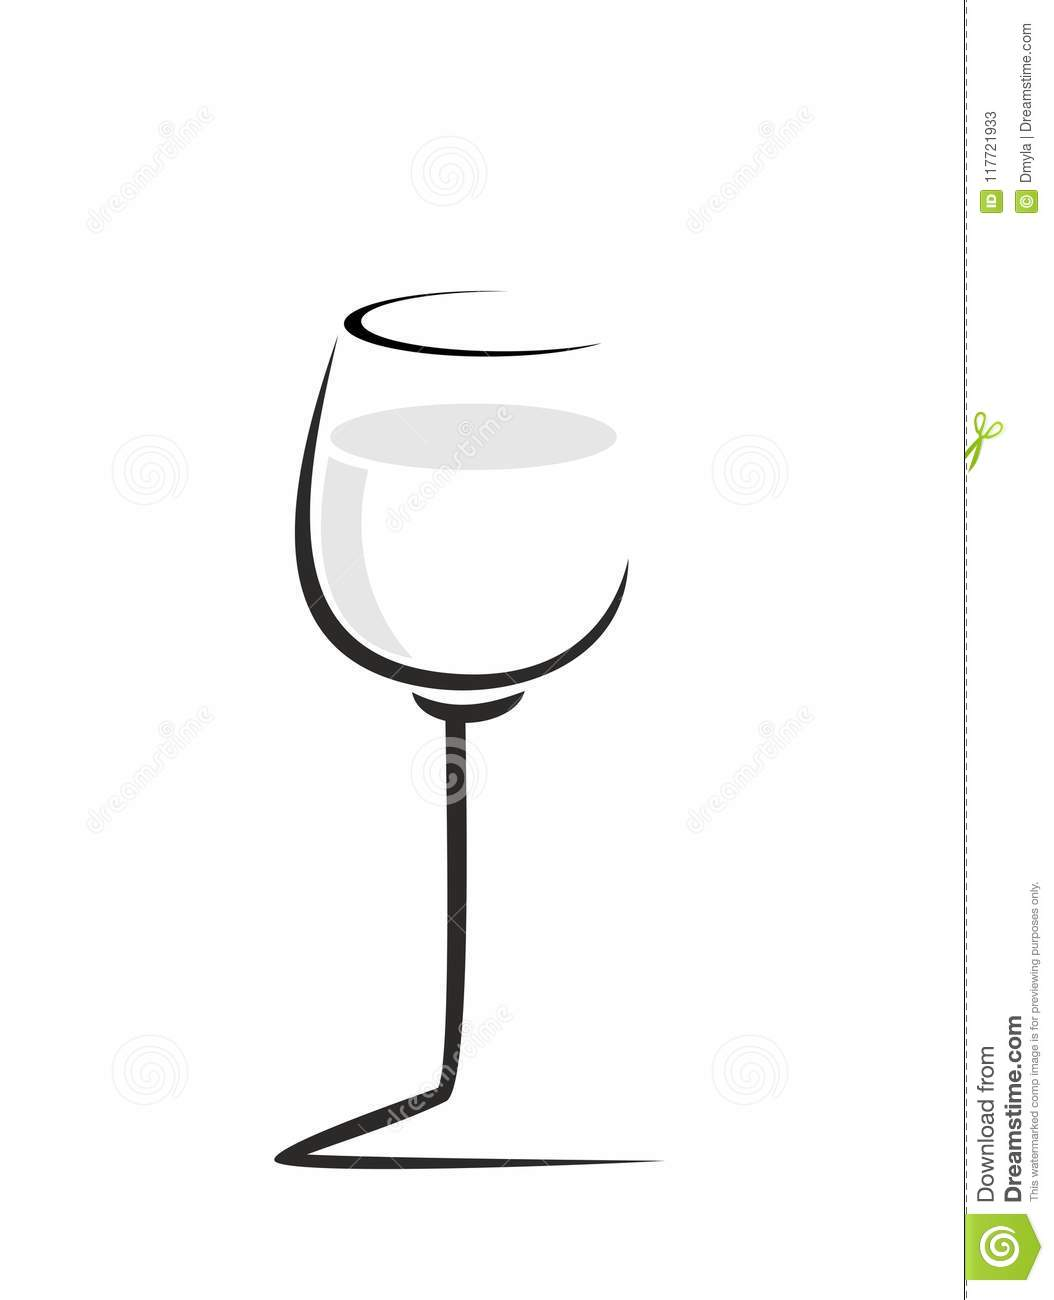 sketch of wine glass